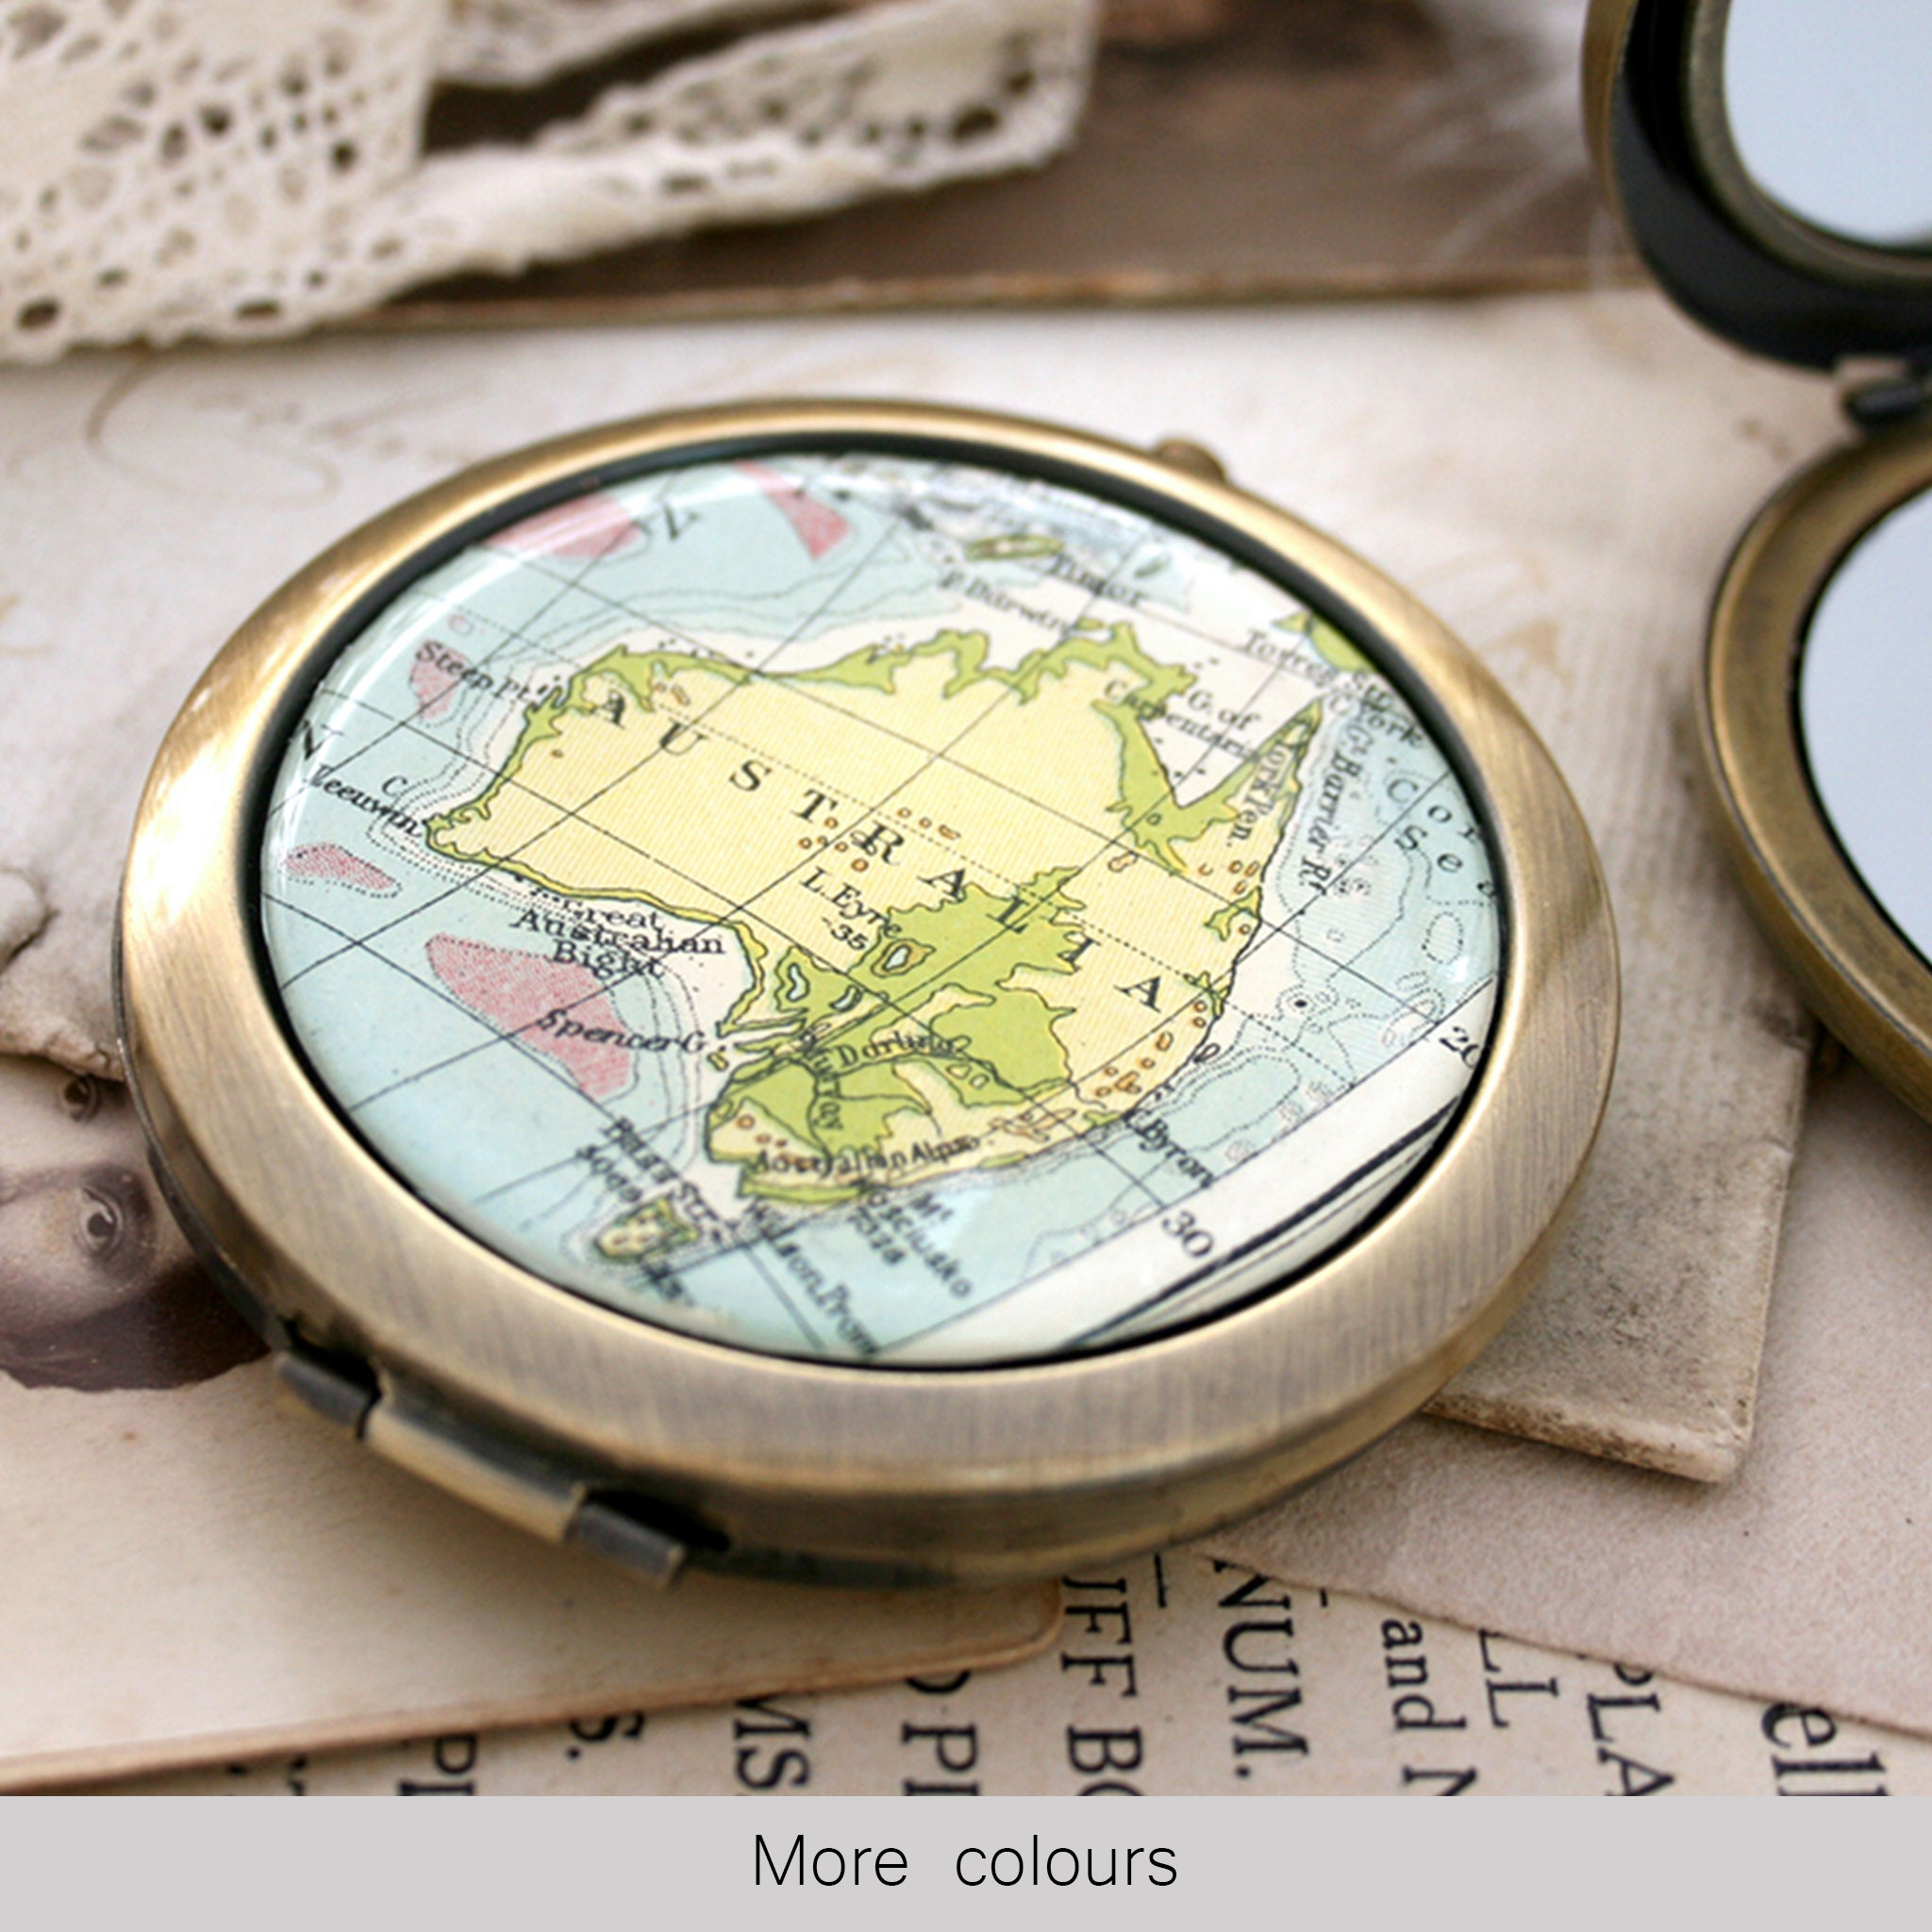 Personalised Compact Mirror in Antique Bronze color featuring map of Australia